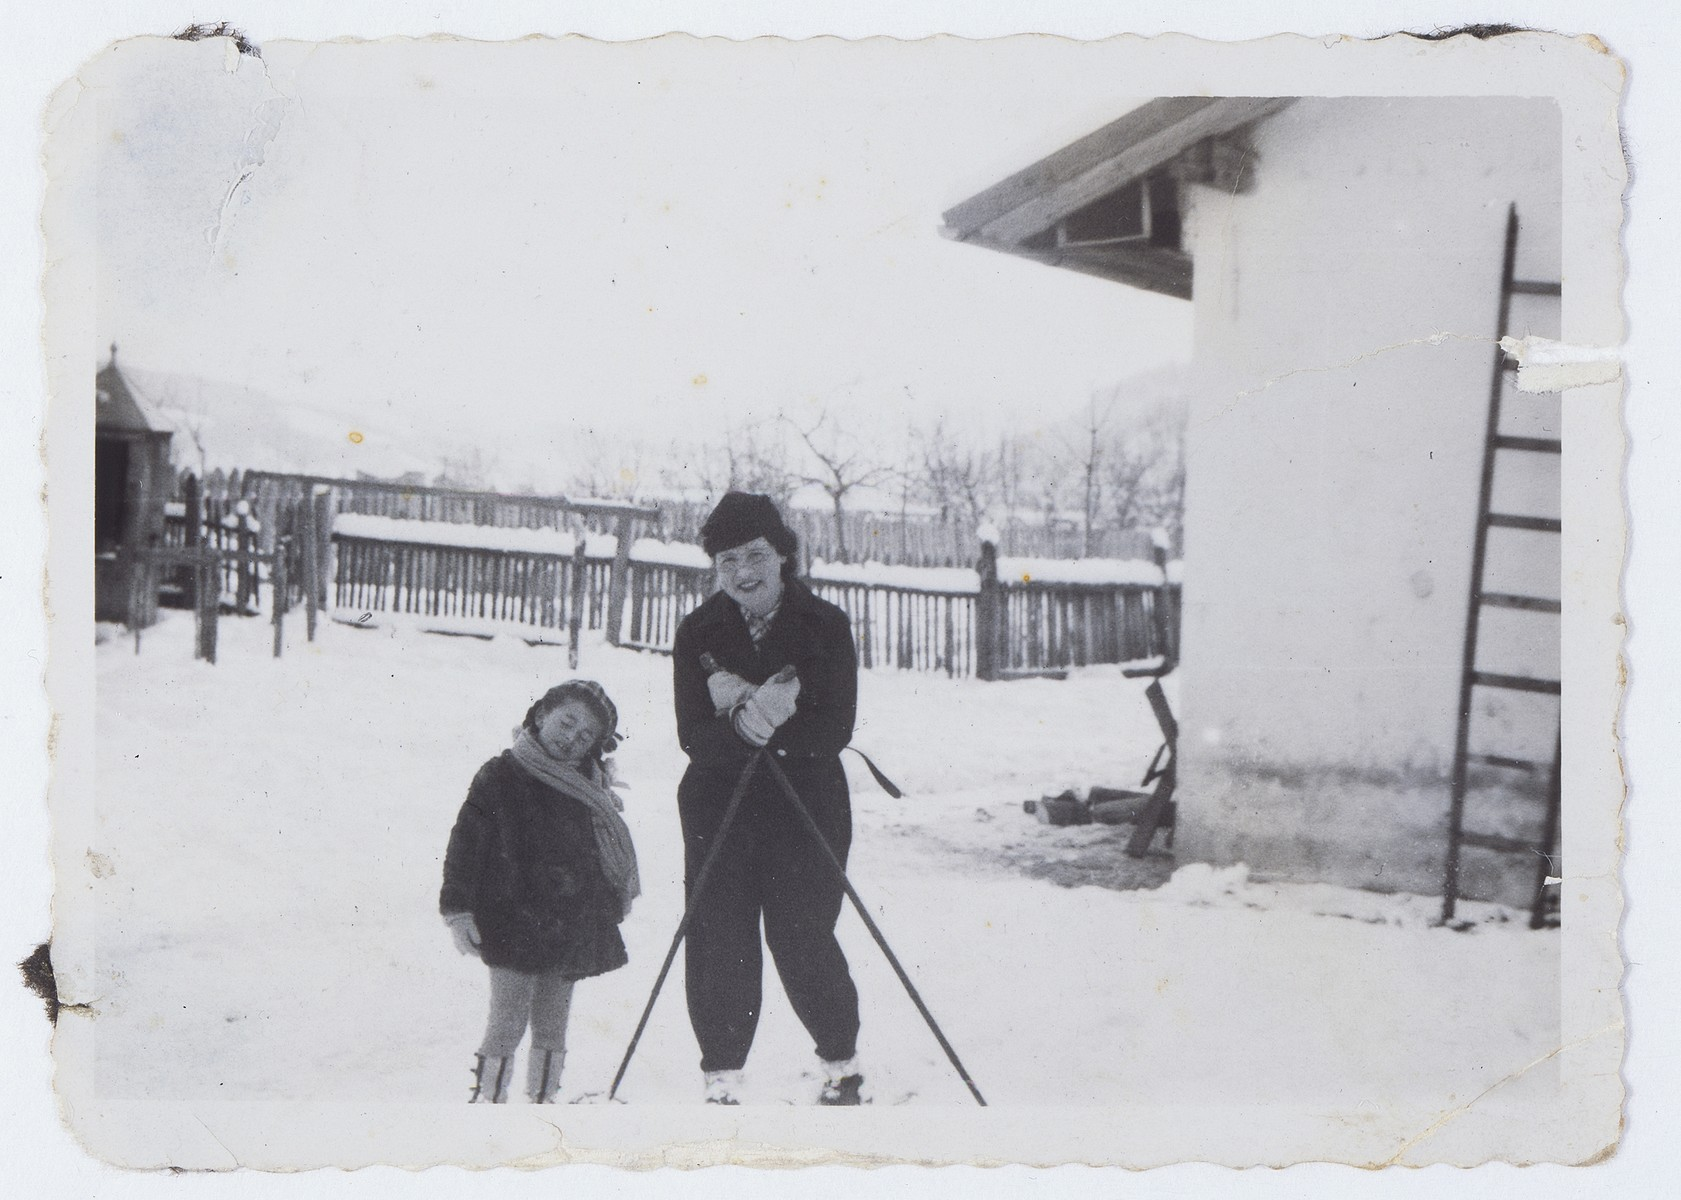 Lida Kleinman and her mother pose in the snow on skis.